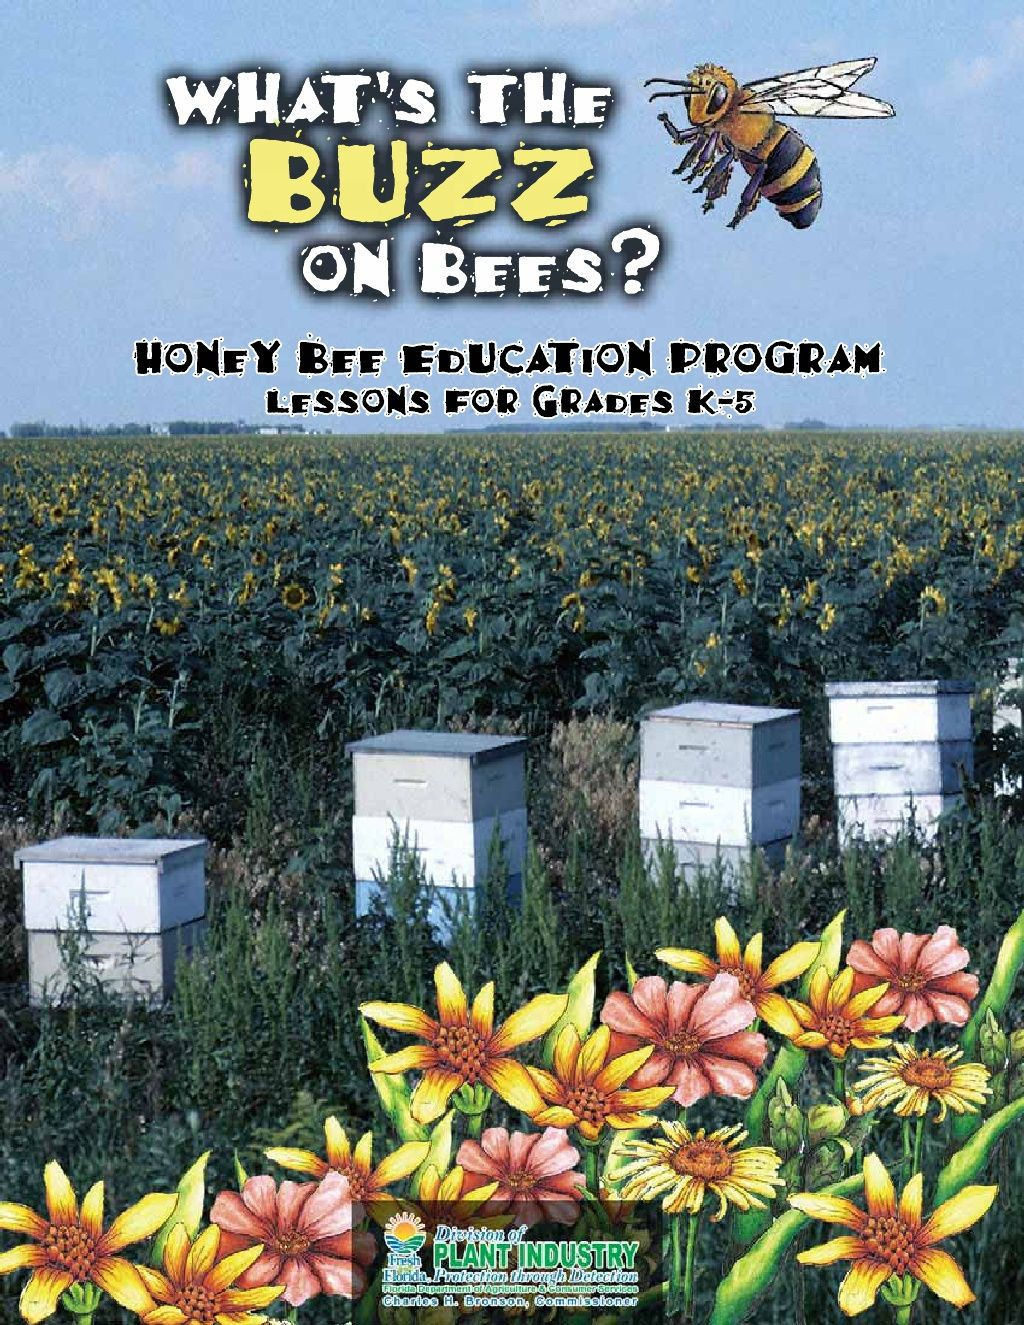 buzz-on-bees-lesson-plan by Fresh from Florida Plant Industry via Slideshare